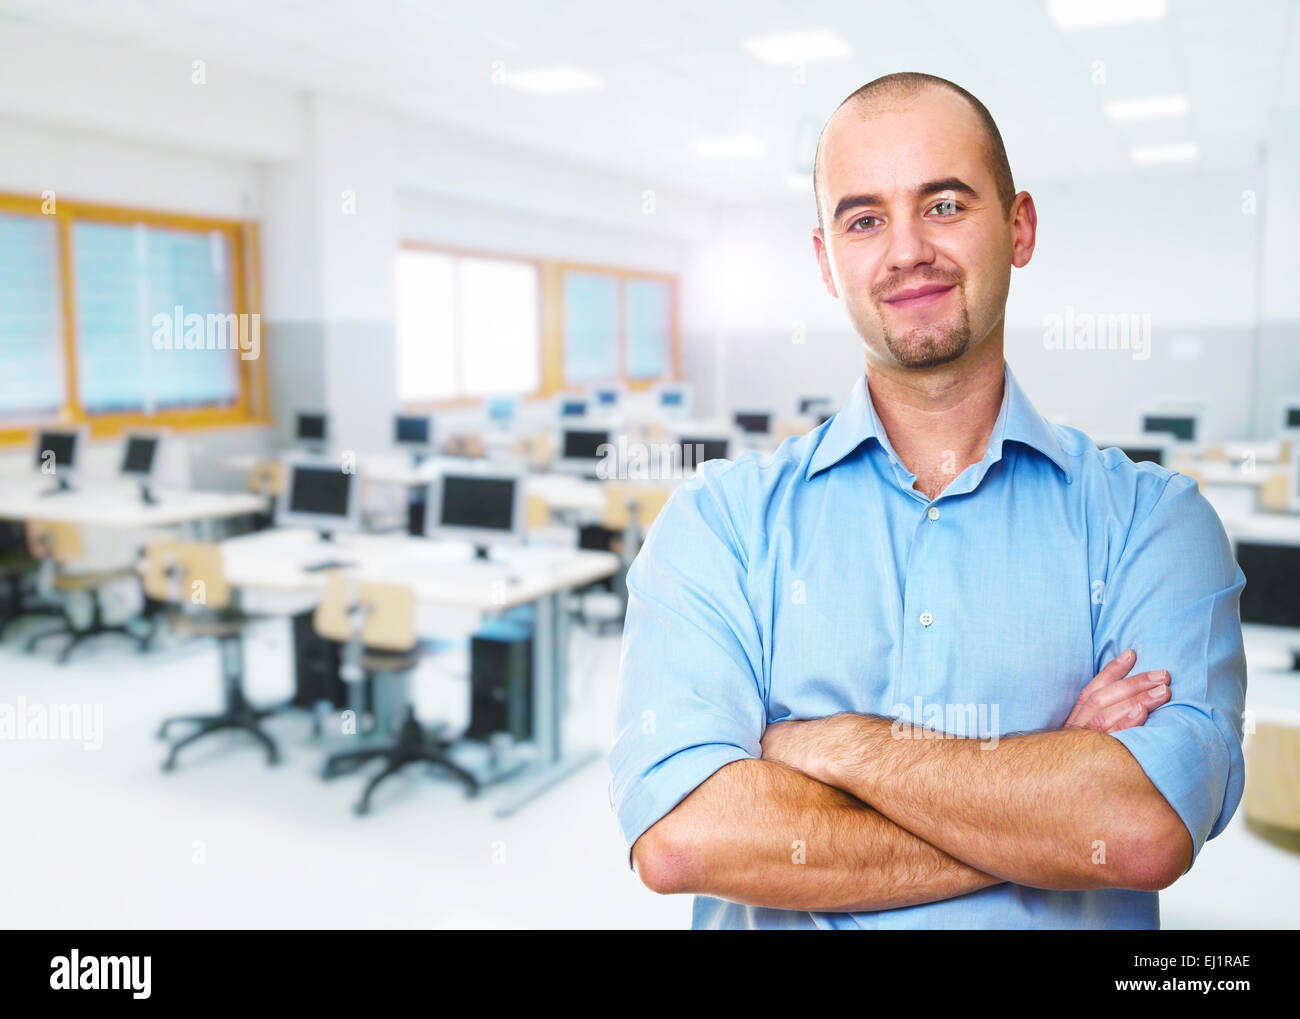 portrait of teacher and classroom background - Stock Image